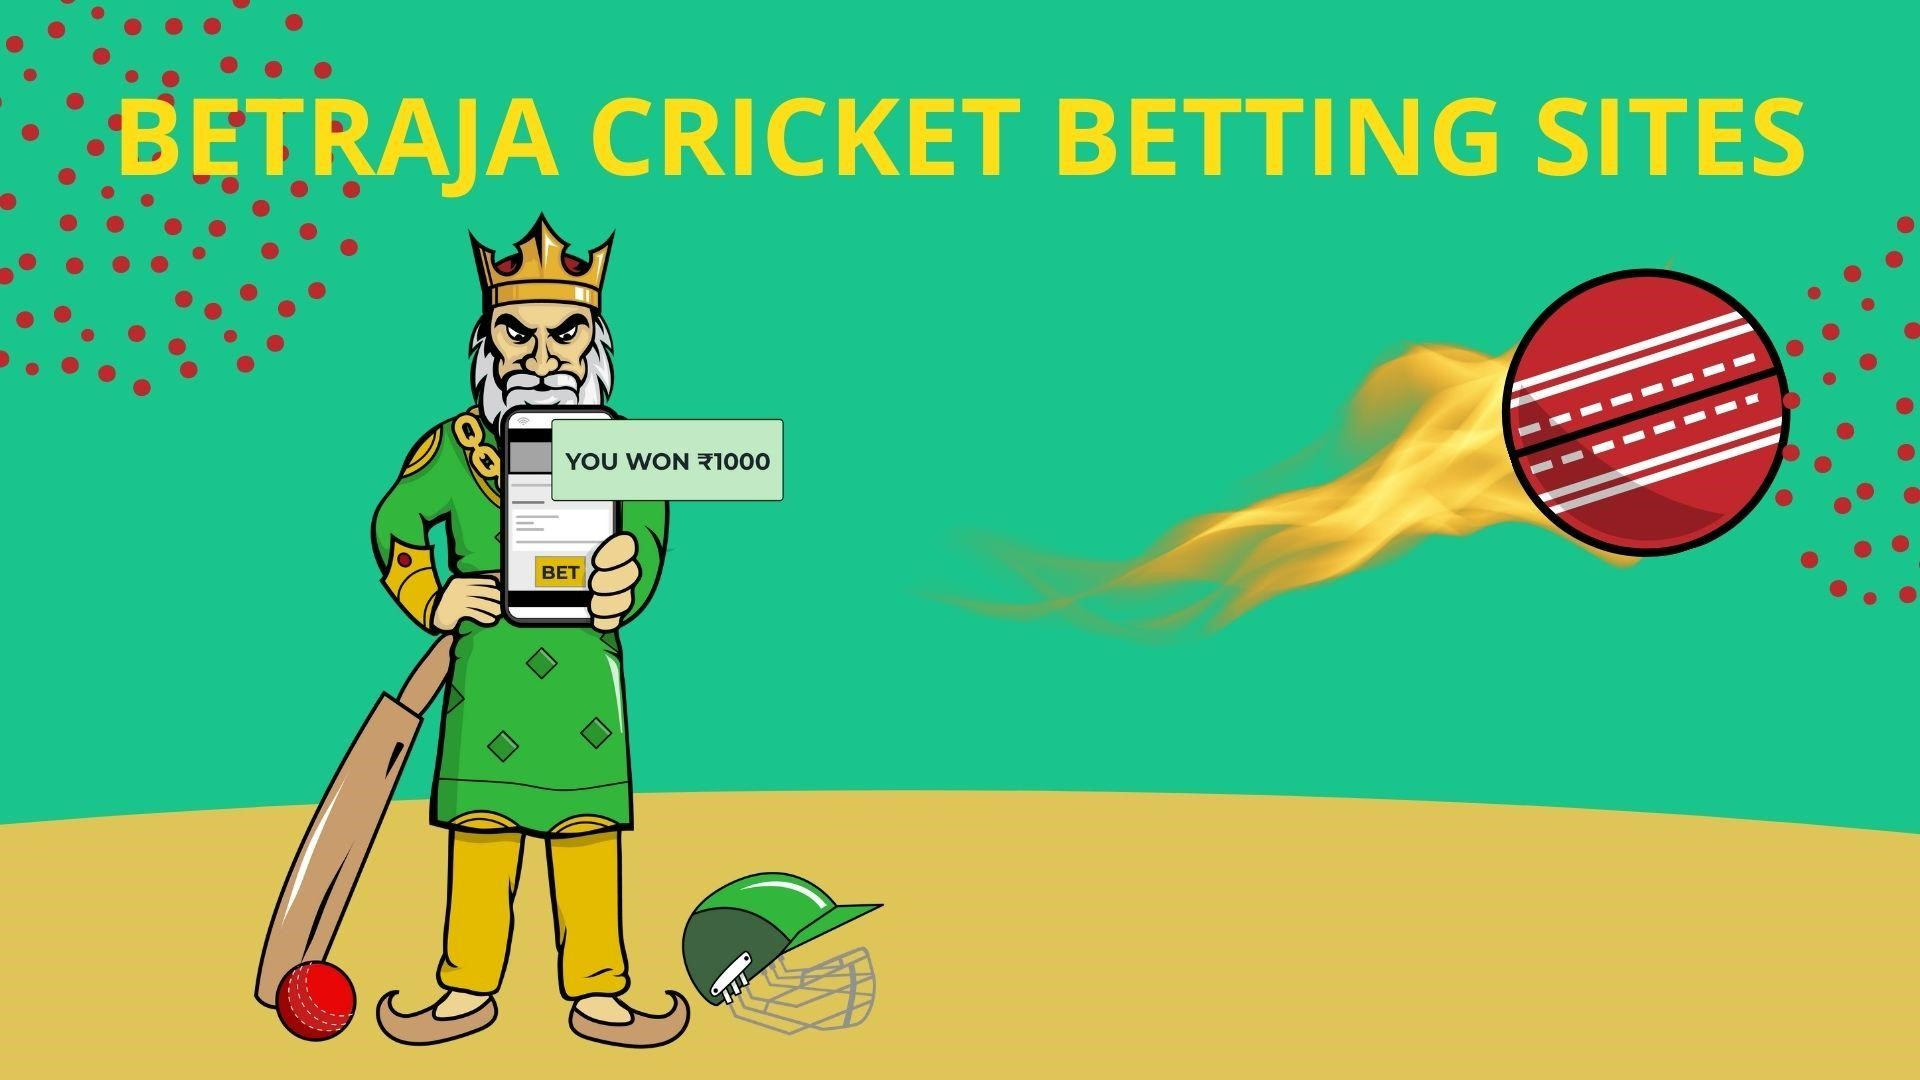 Cricket betting sites - How to choose the best bookmaker in India? 5